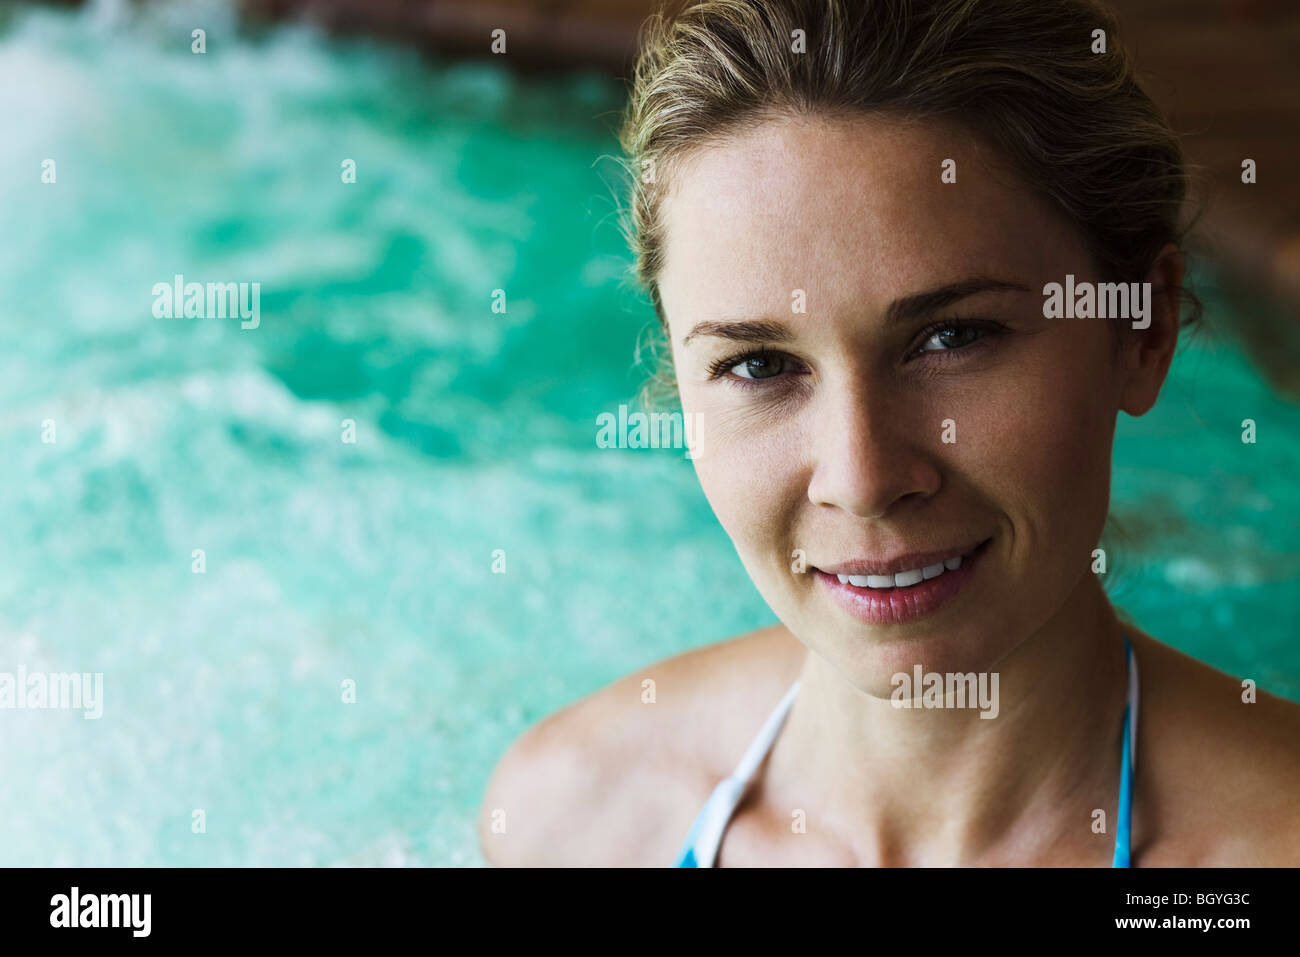 Woman smiling at camera, hot tub in background, portrait - Stock Image